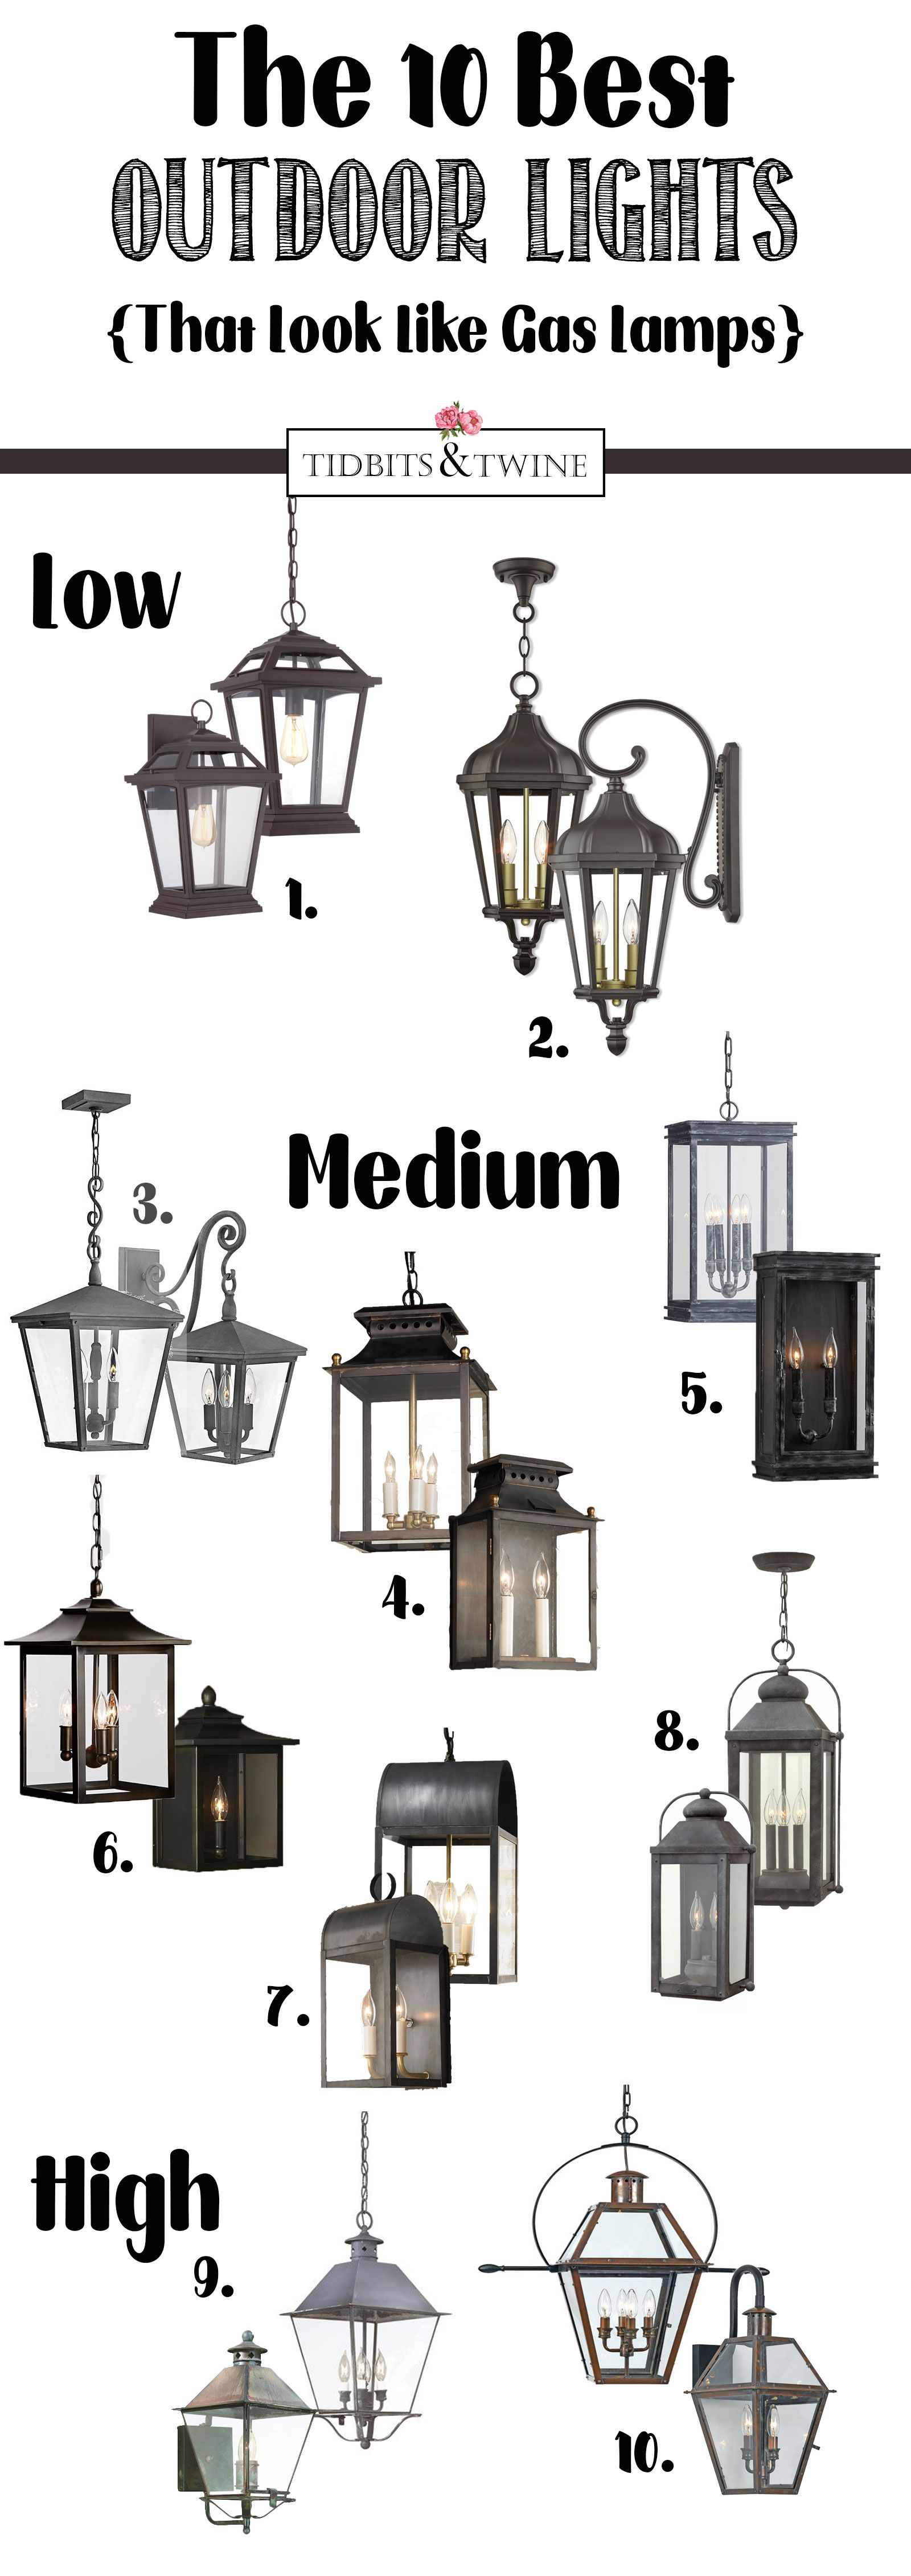 The Best Outdoor Hanging Lantern Sconce Sets Tidbits Twine Outdoor Hanging Lanterns Outdoor Lanterns Outdoor Hanging Lights